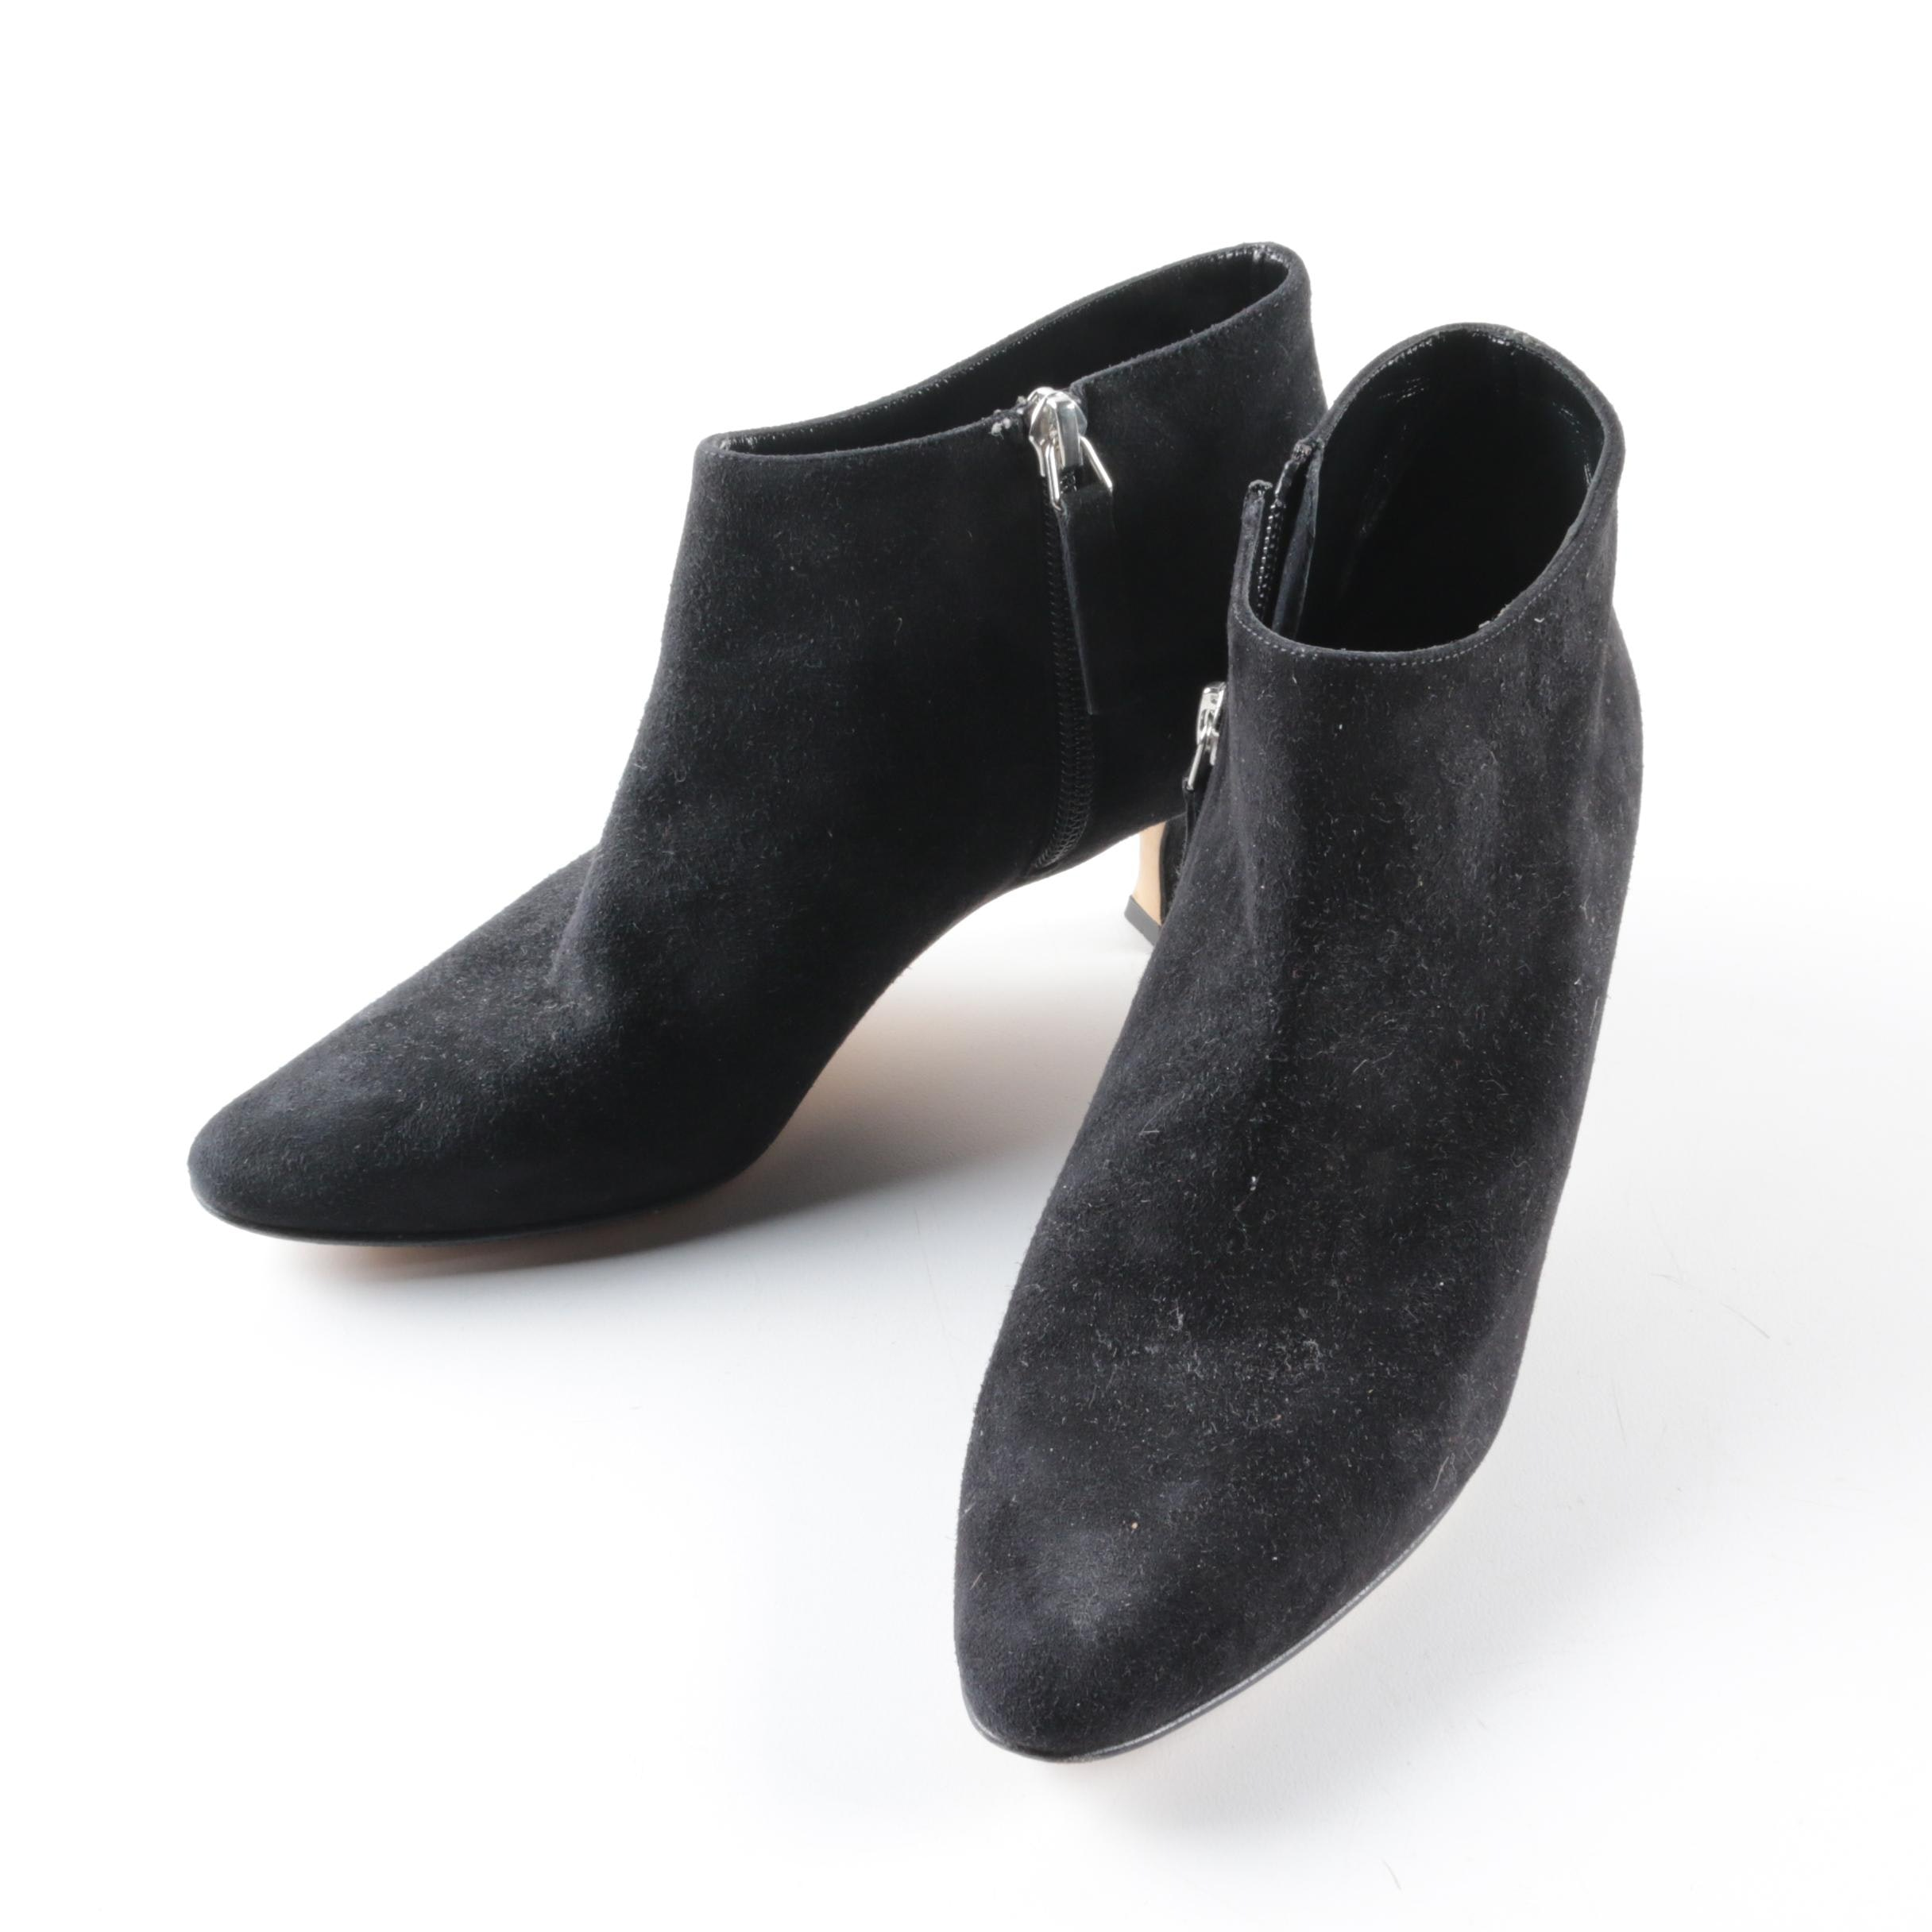 Manolo Blahnik Black Suede High Heel Booties